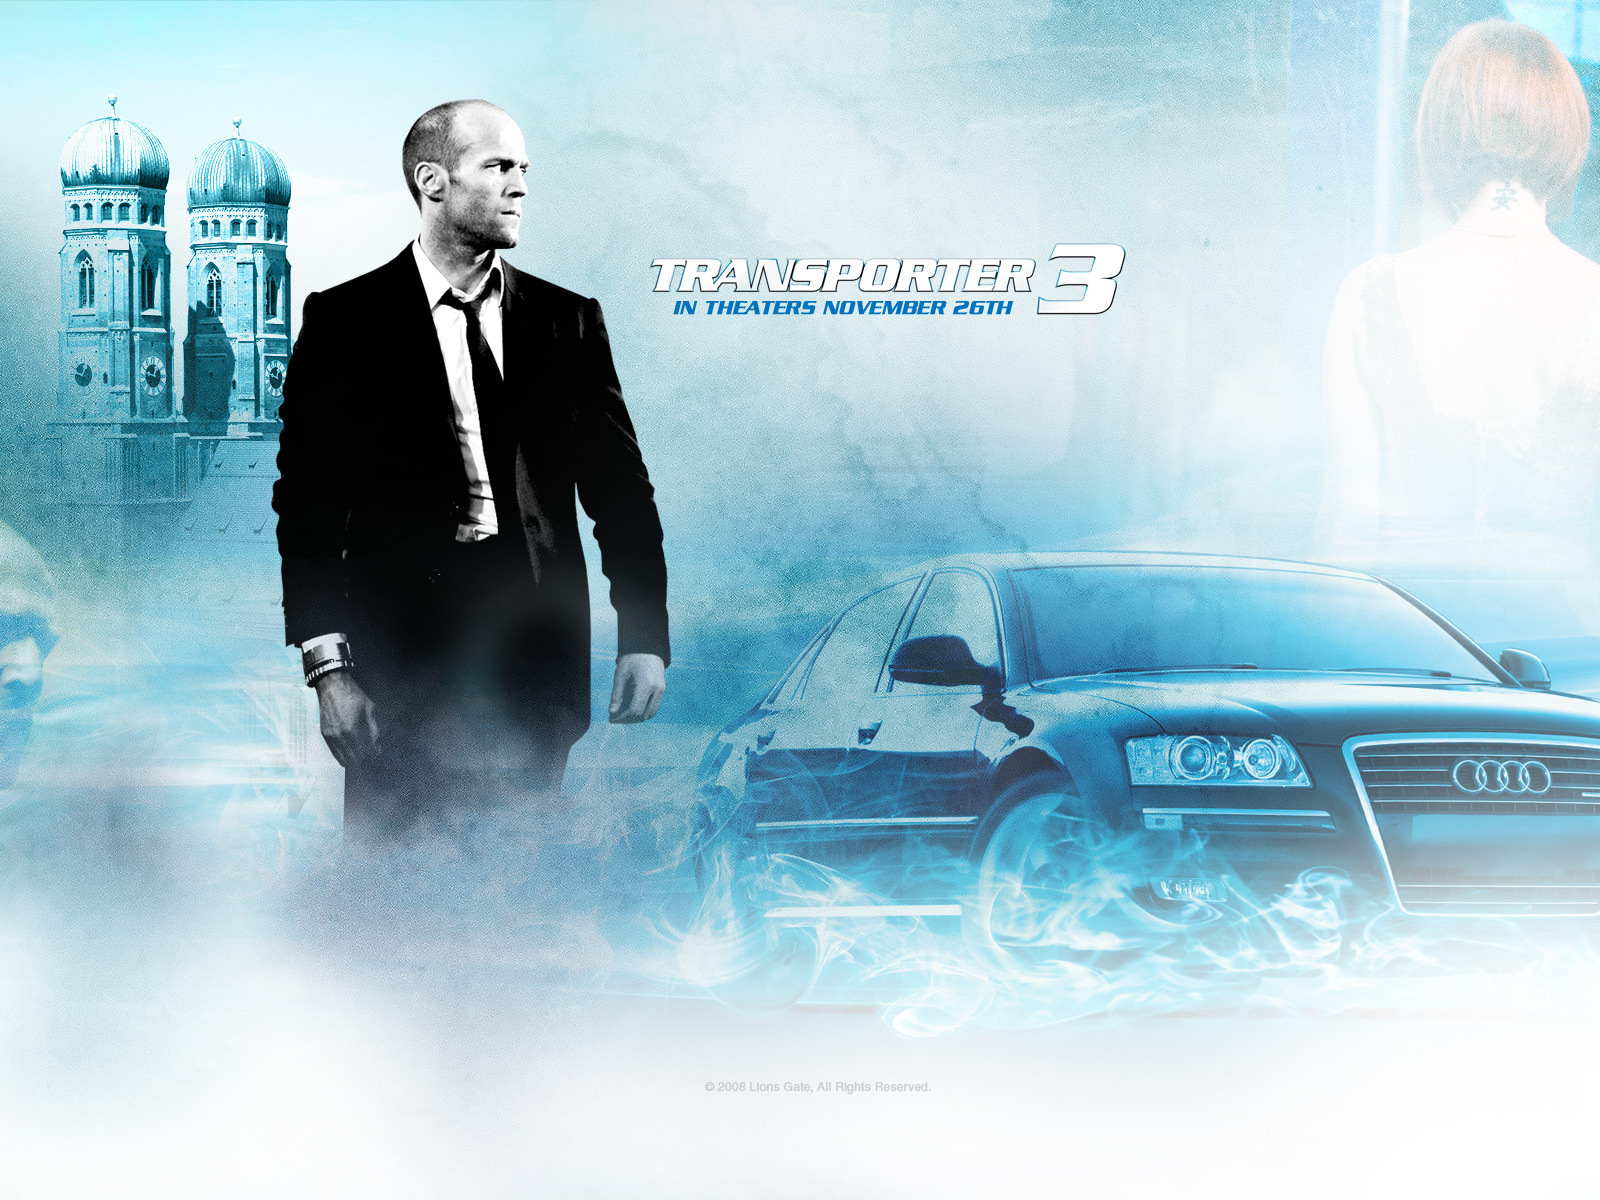 transporter 3 upcoming movies wallpaper 2877546 fanpop. Black Bedroom Furniture Sets. Home Design Ideas